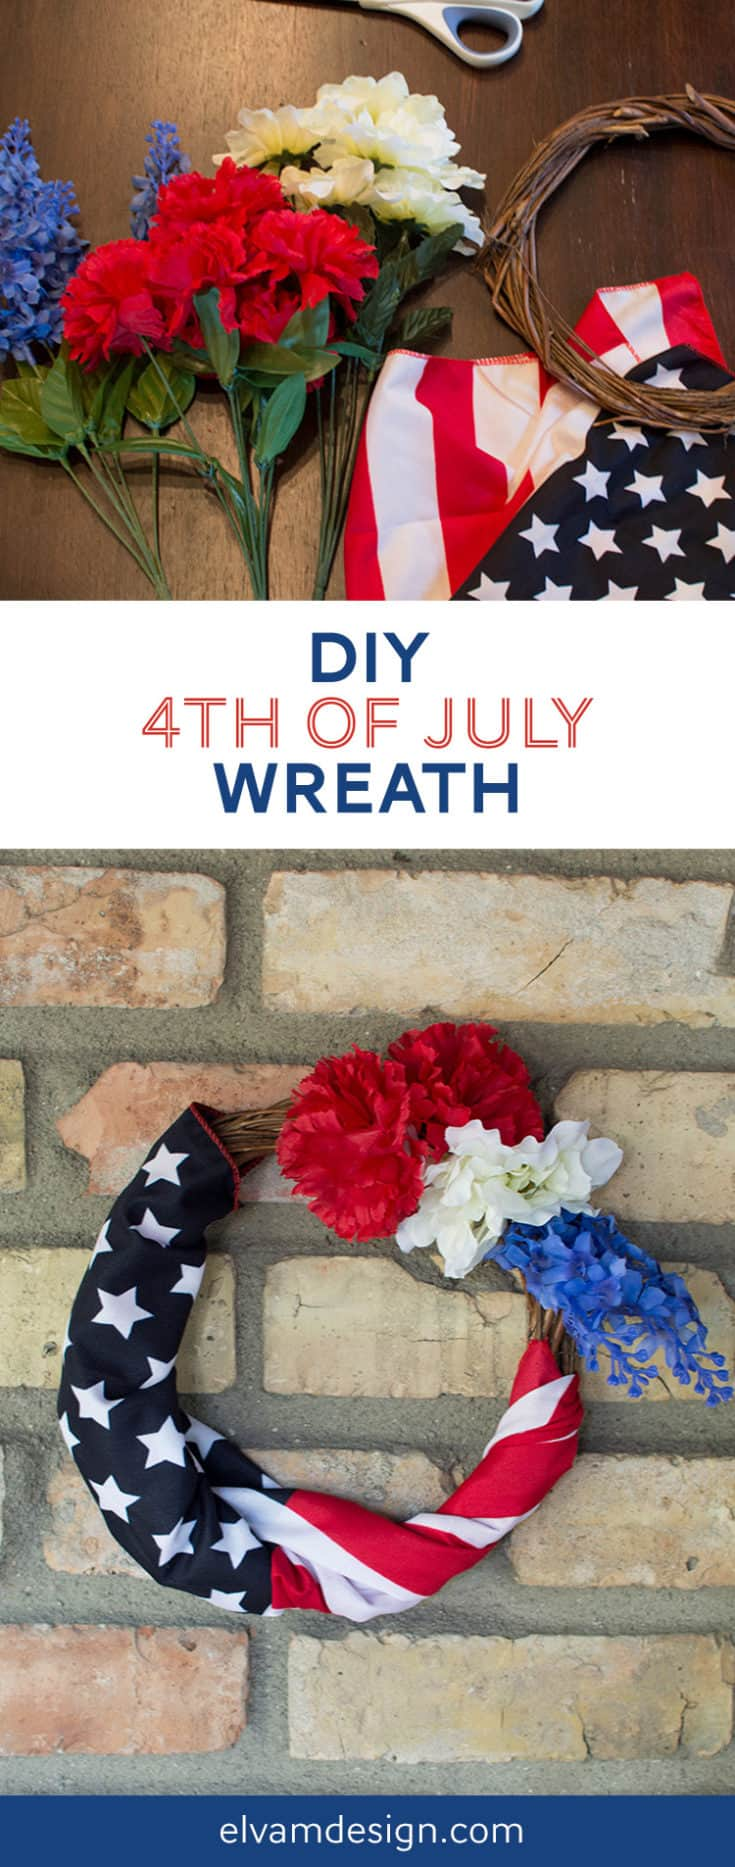 Only 15 minutes and $5. needed to make a simple 4th of July wreath to decorate your home with Dollar Store items. Tutorial and details at elvamdesign.com. #4thofjuly #4thofjulywreath #crafts